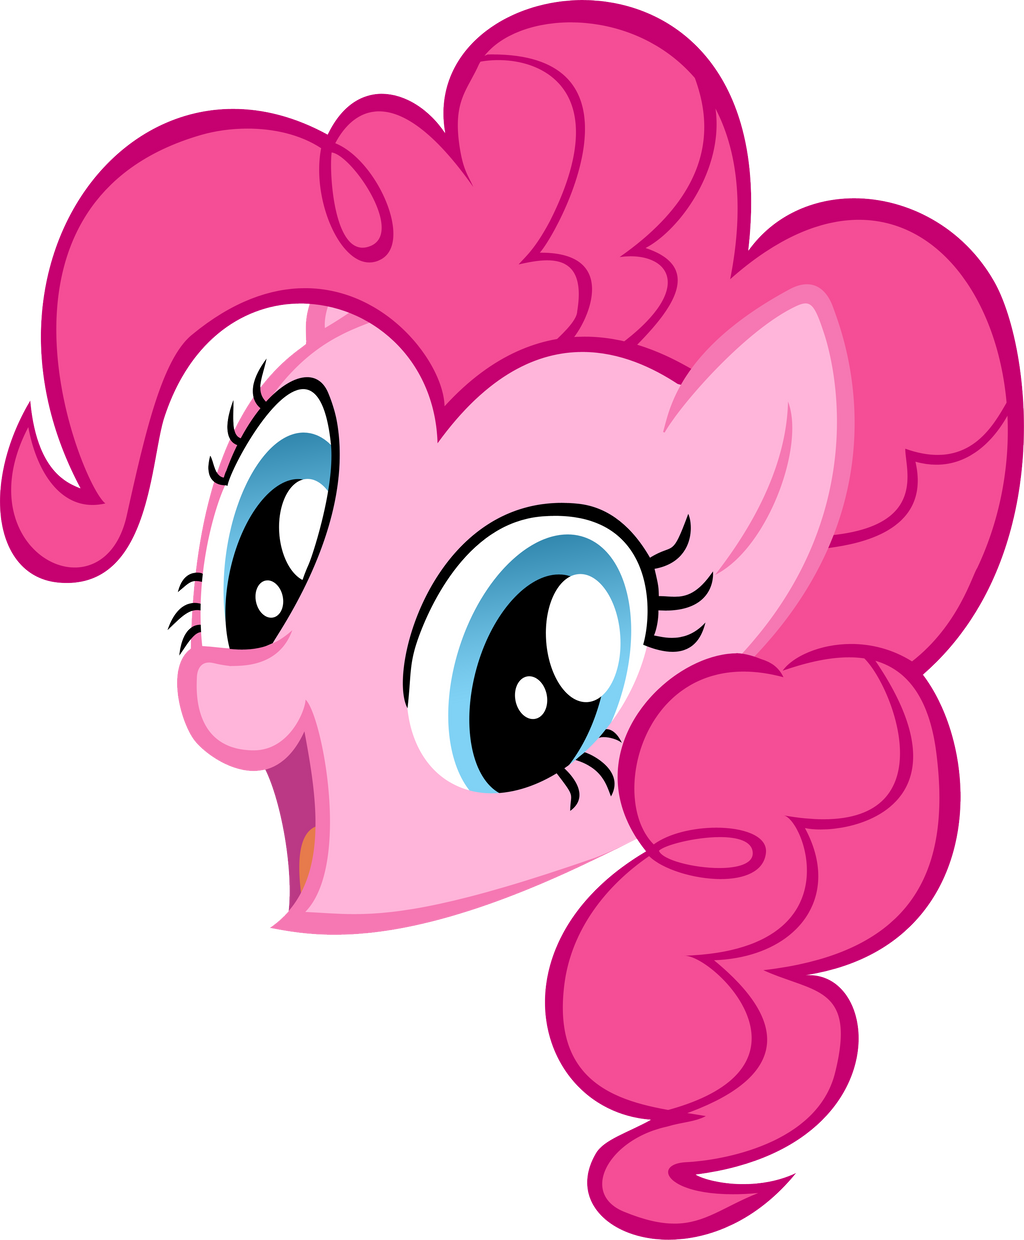 pinkie pies guide to dating Episode guide search episodes filters pref always watch using  pinkie pie song × 6 musical amy keating rogers jayson thiessen  mane 6 cheese sandwich.